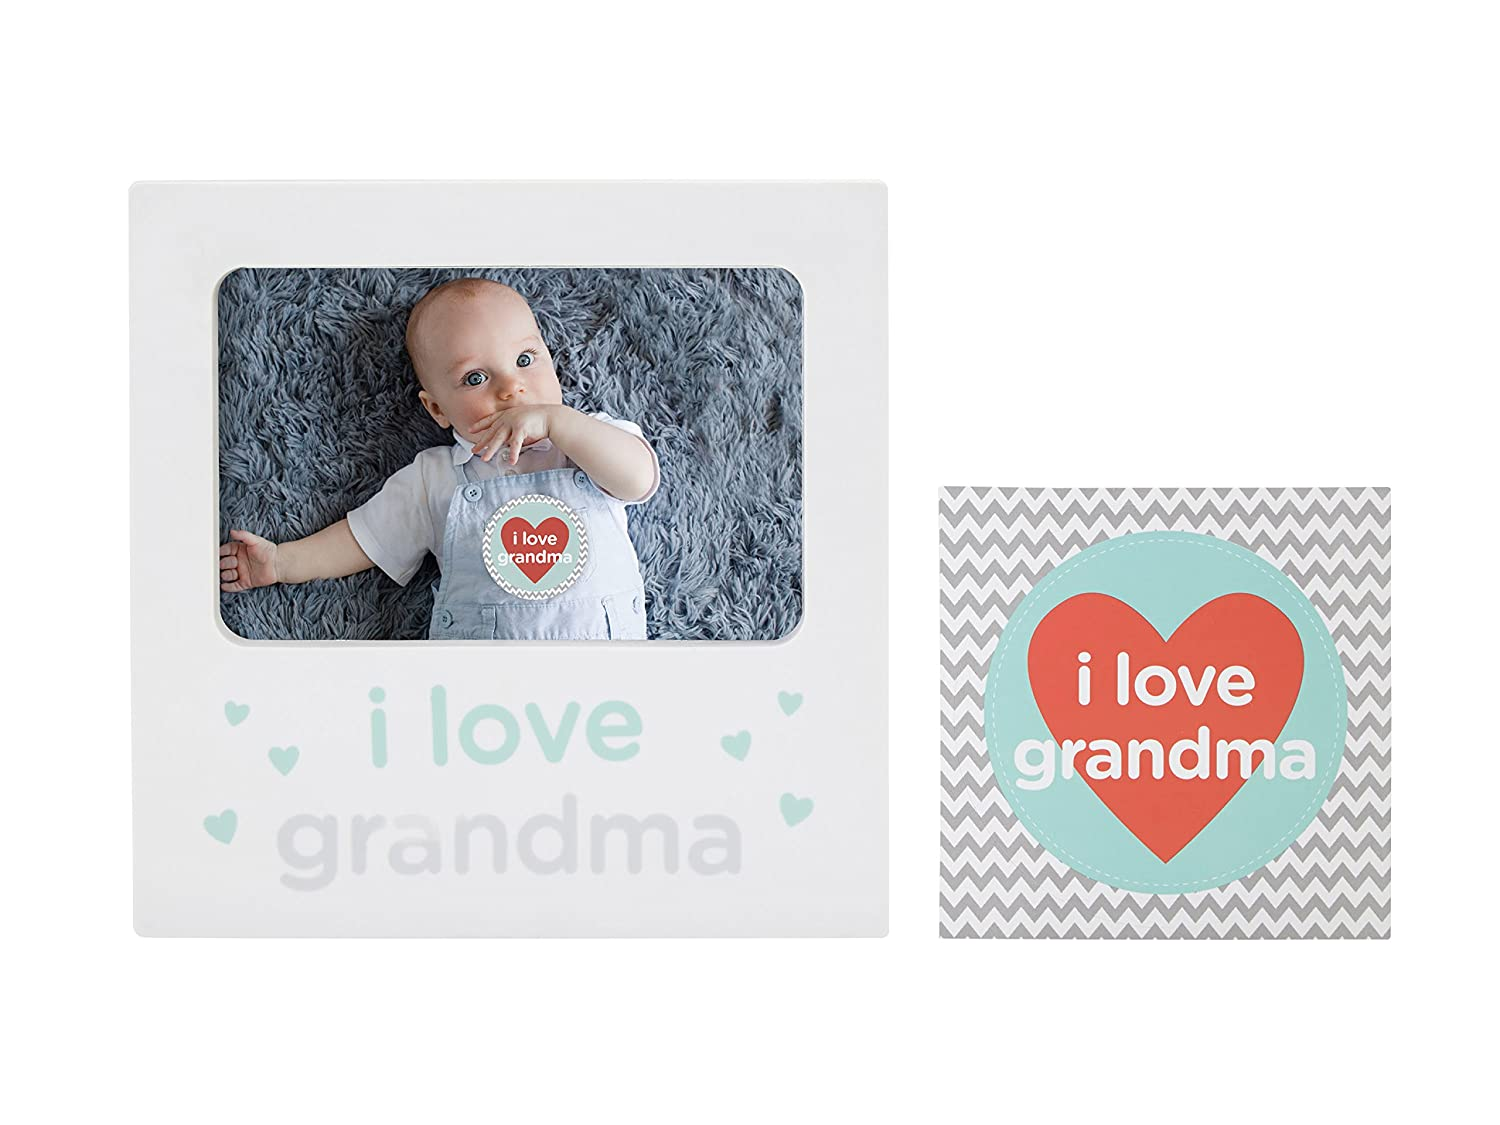 Tiny Ideas I Love Grandma Baby Belly Sticker and Sentiment Keepsake Photo Frame Gift Set, White Pearhead Inc. 96227